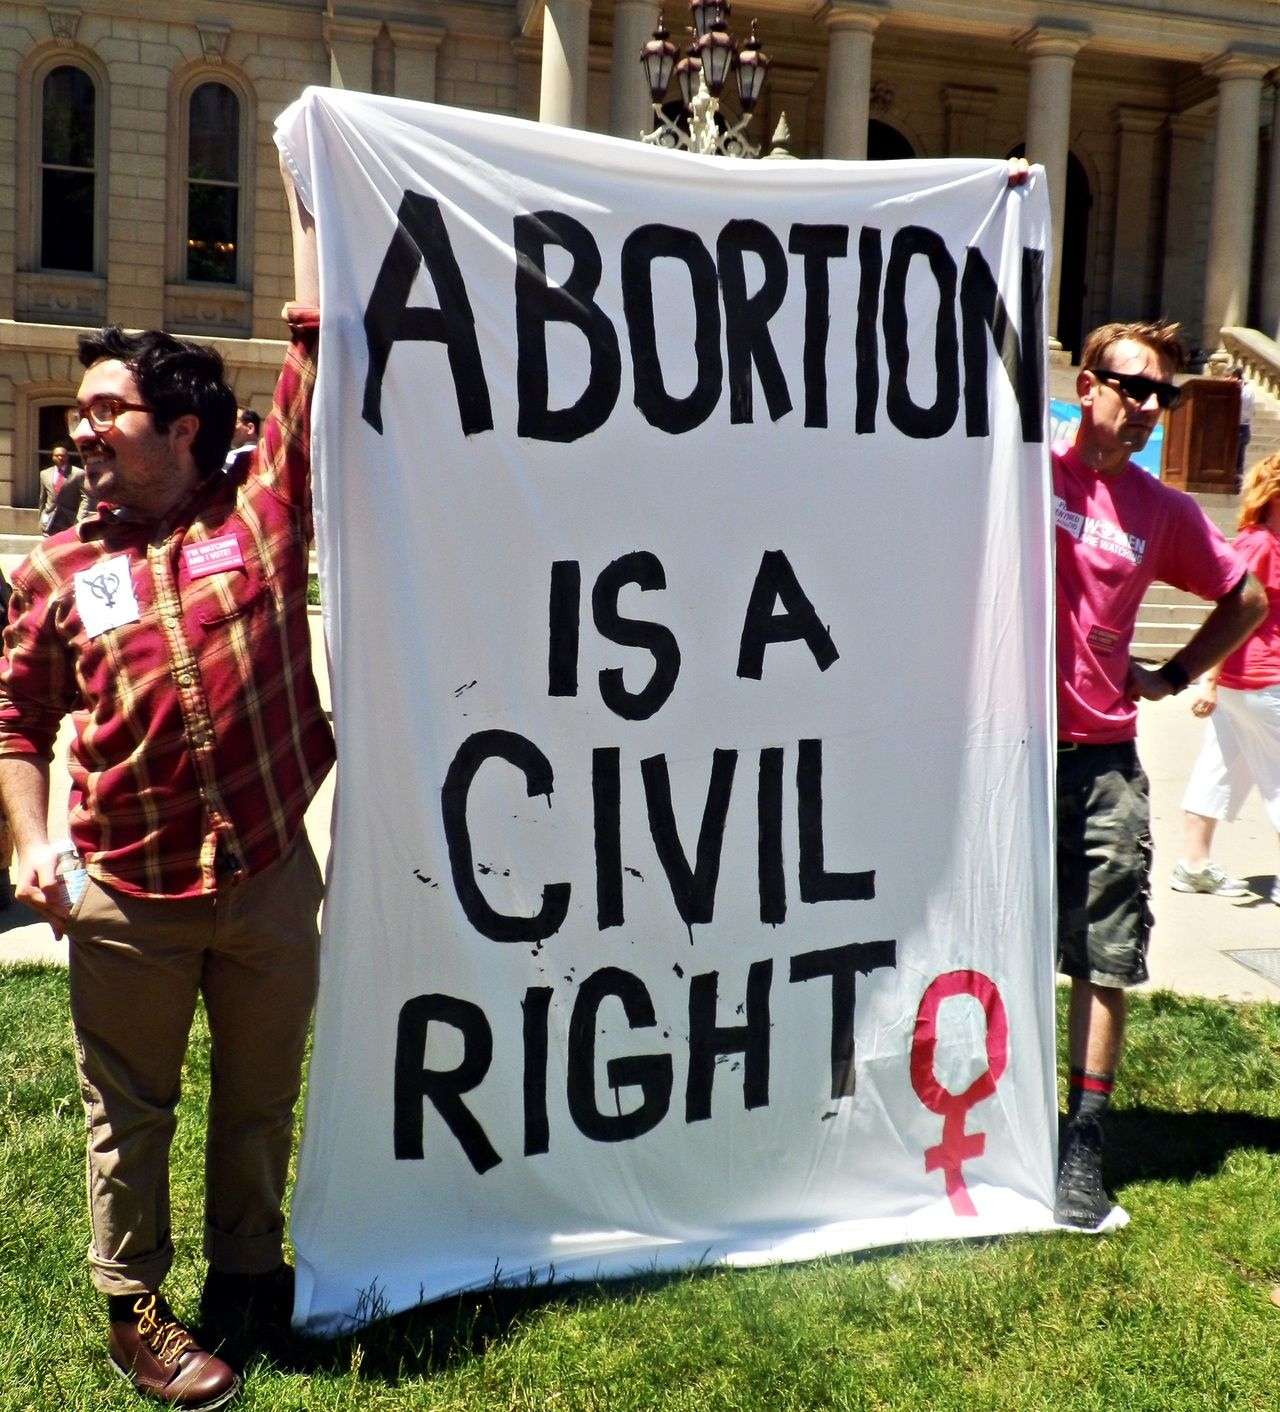 pro choice signs pro choice protest signs hd tumblrmmtmwaqlrvbo pro choice signs pro choice protest signs hd tumblrmmtmwaqlrvbo hd